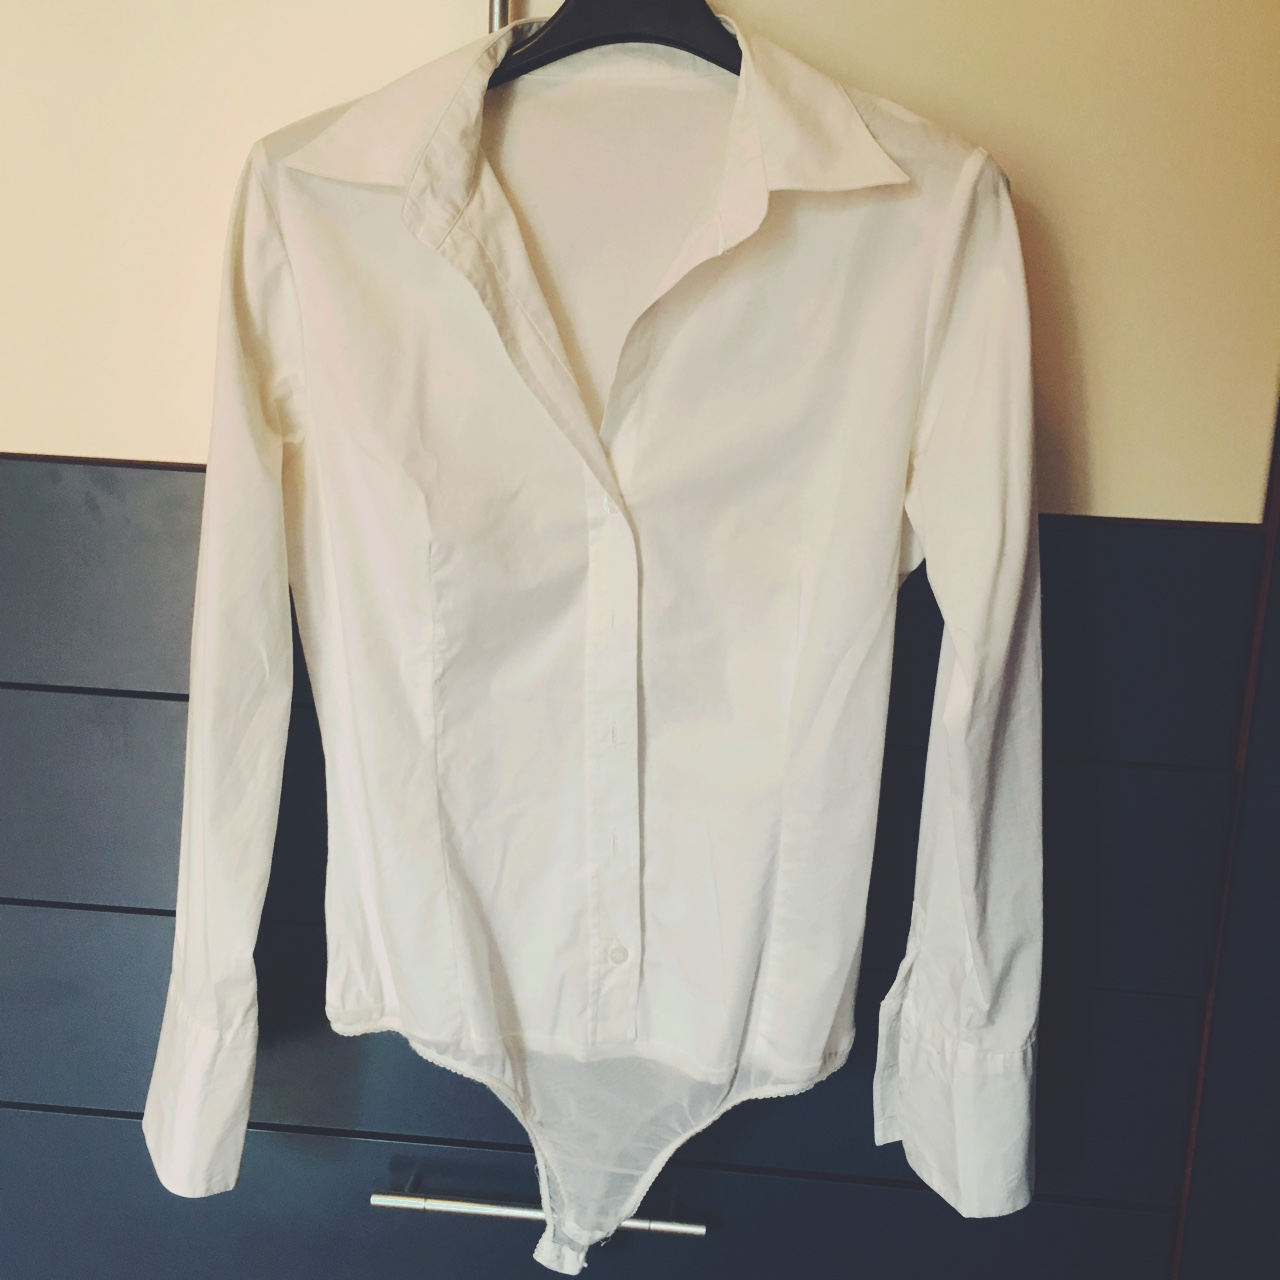 huge selection of c5269 38c63 Camicia bianca a body - Depop